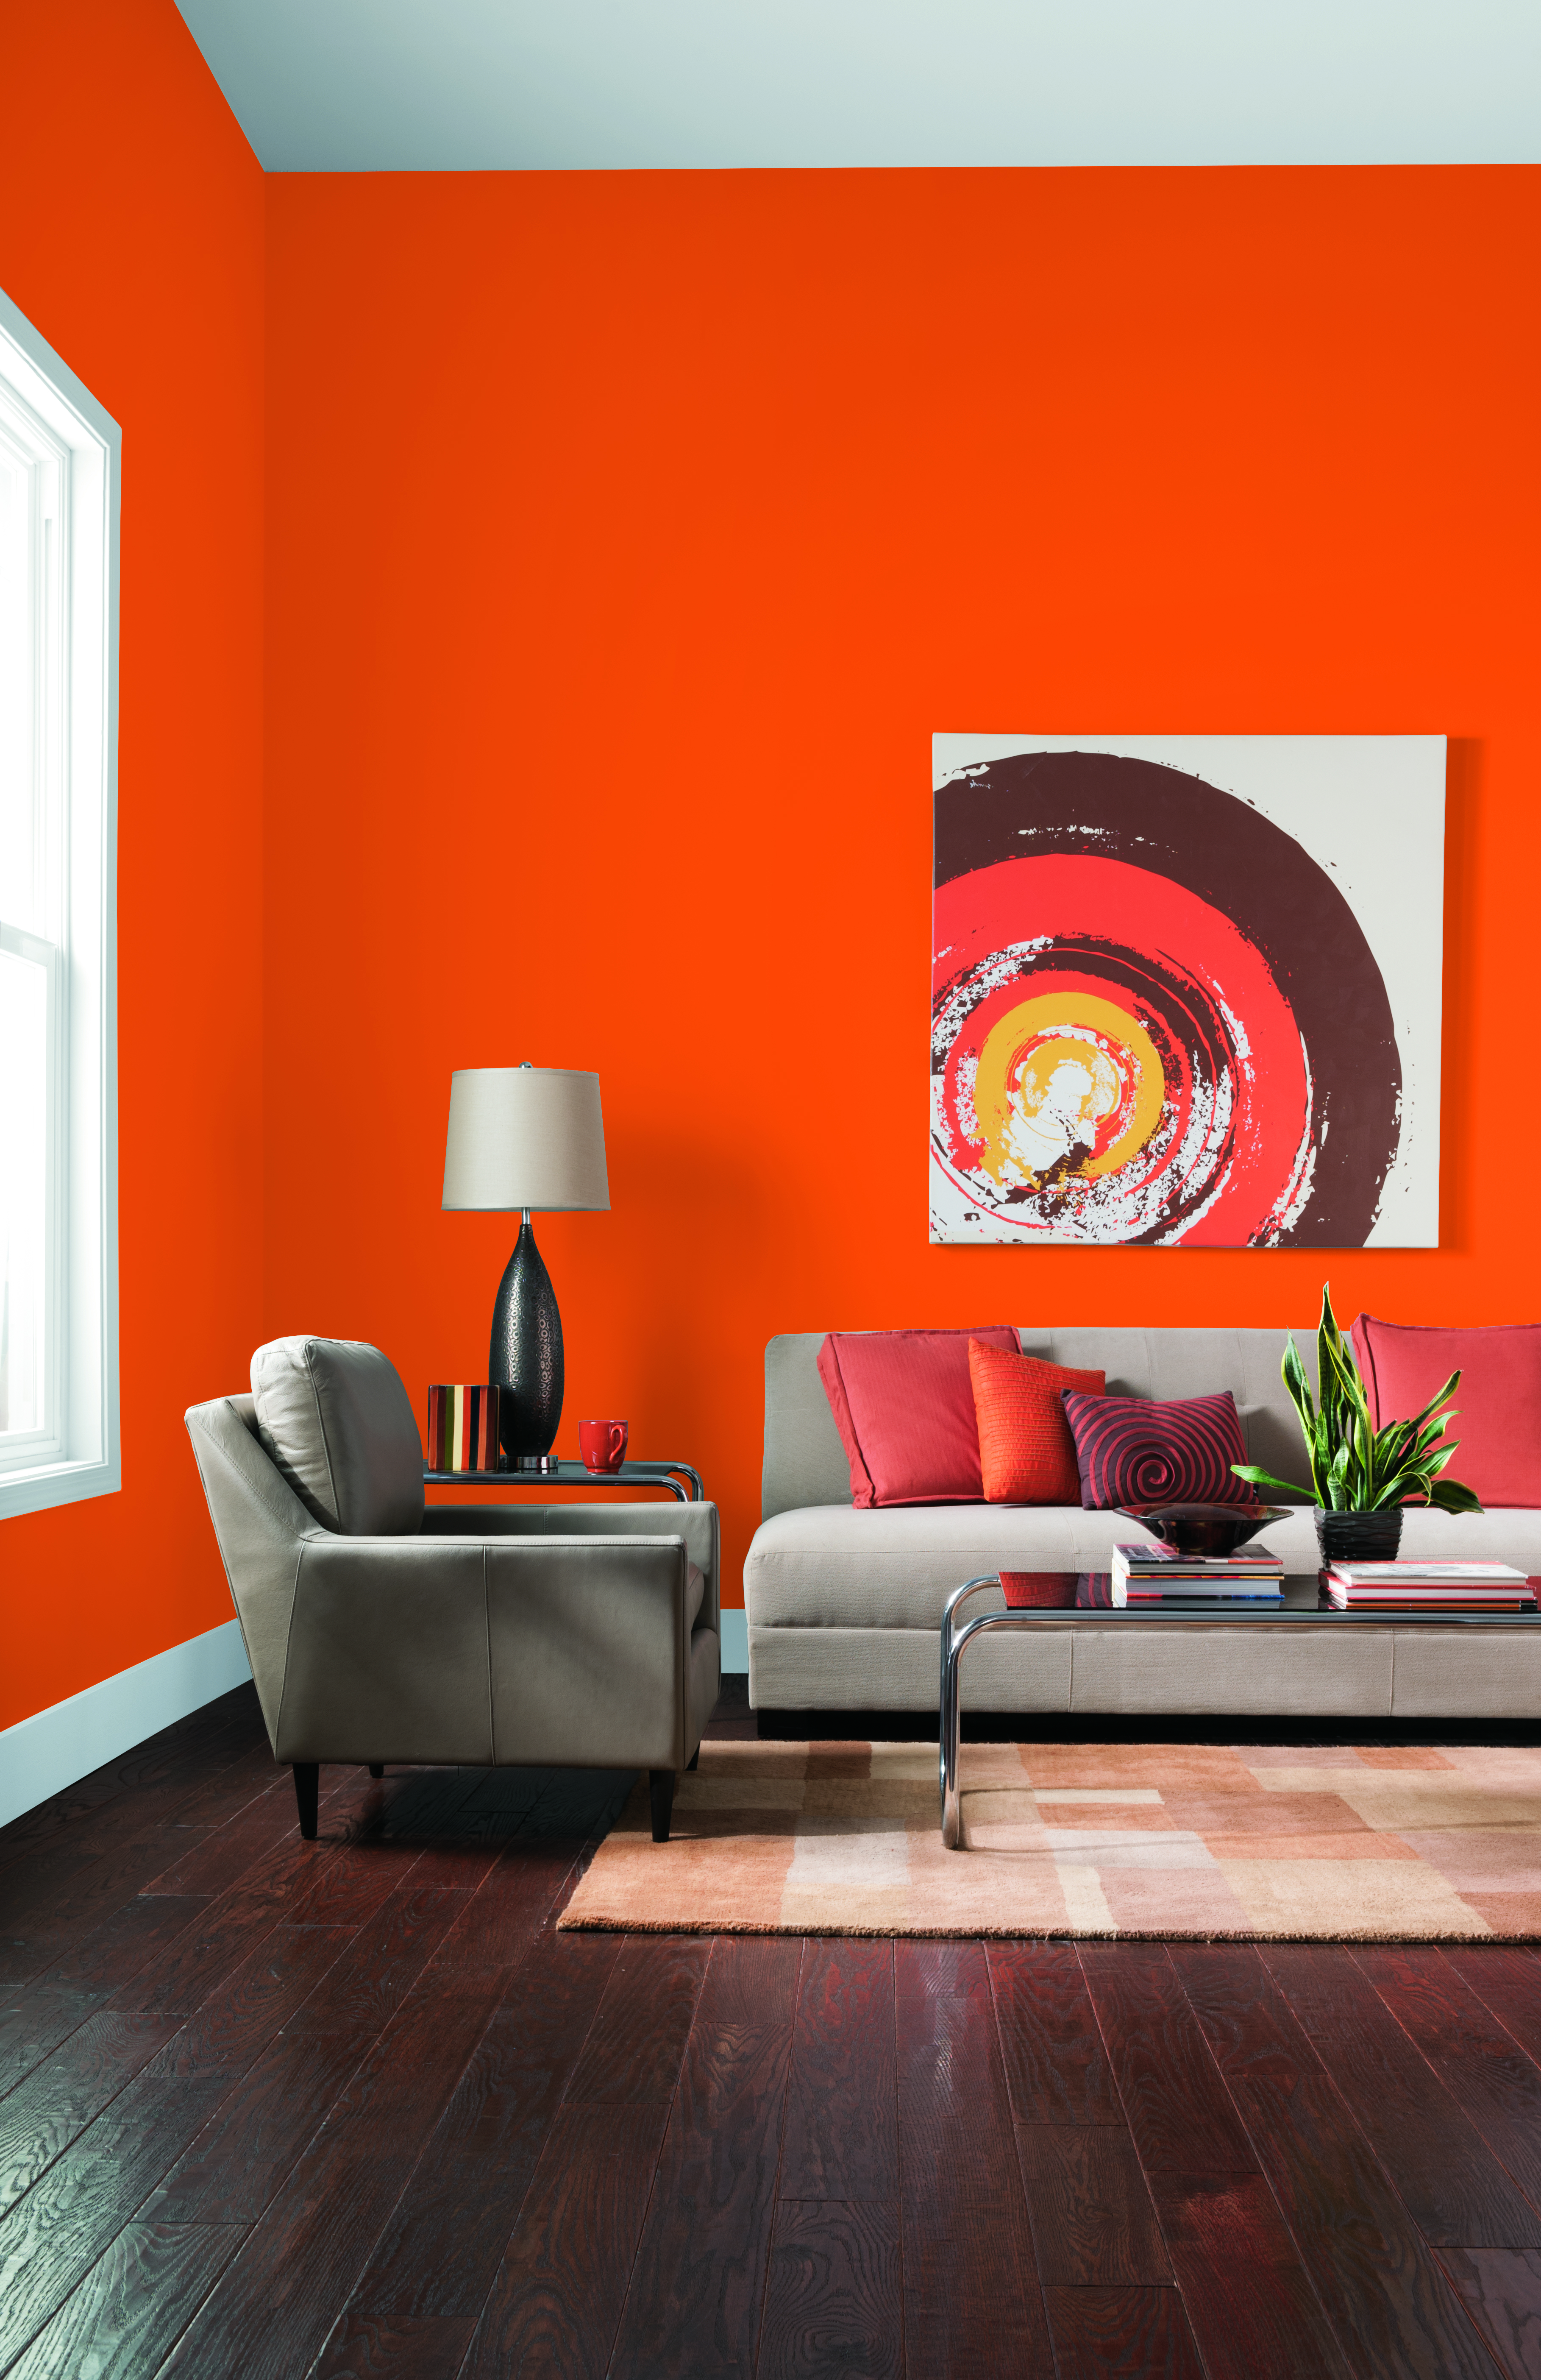 Ppg Introduces Glidden Complete Interior Paint And Primer For An Exceptional Value At Walmart Stores